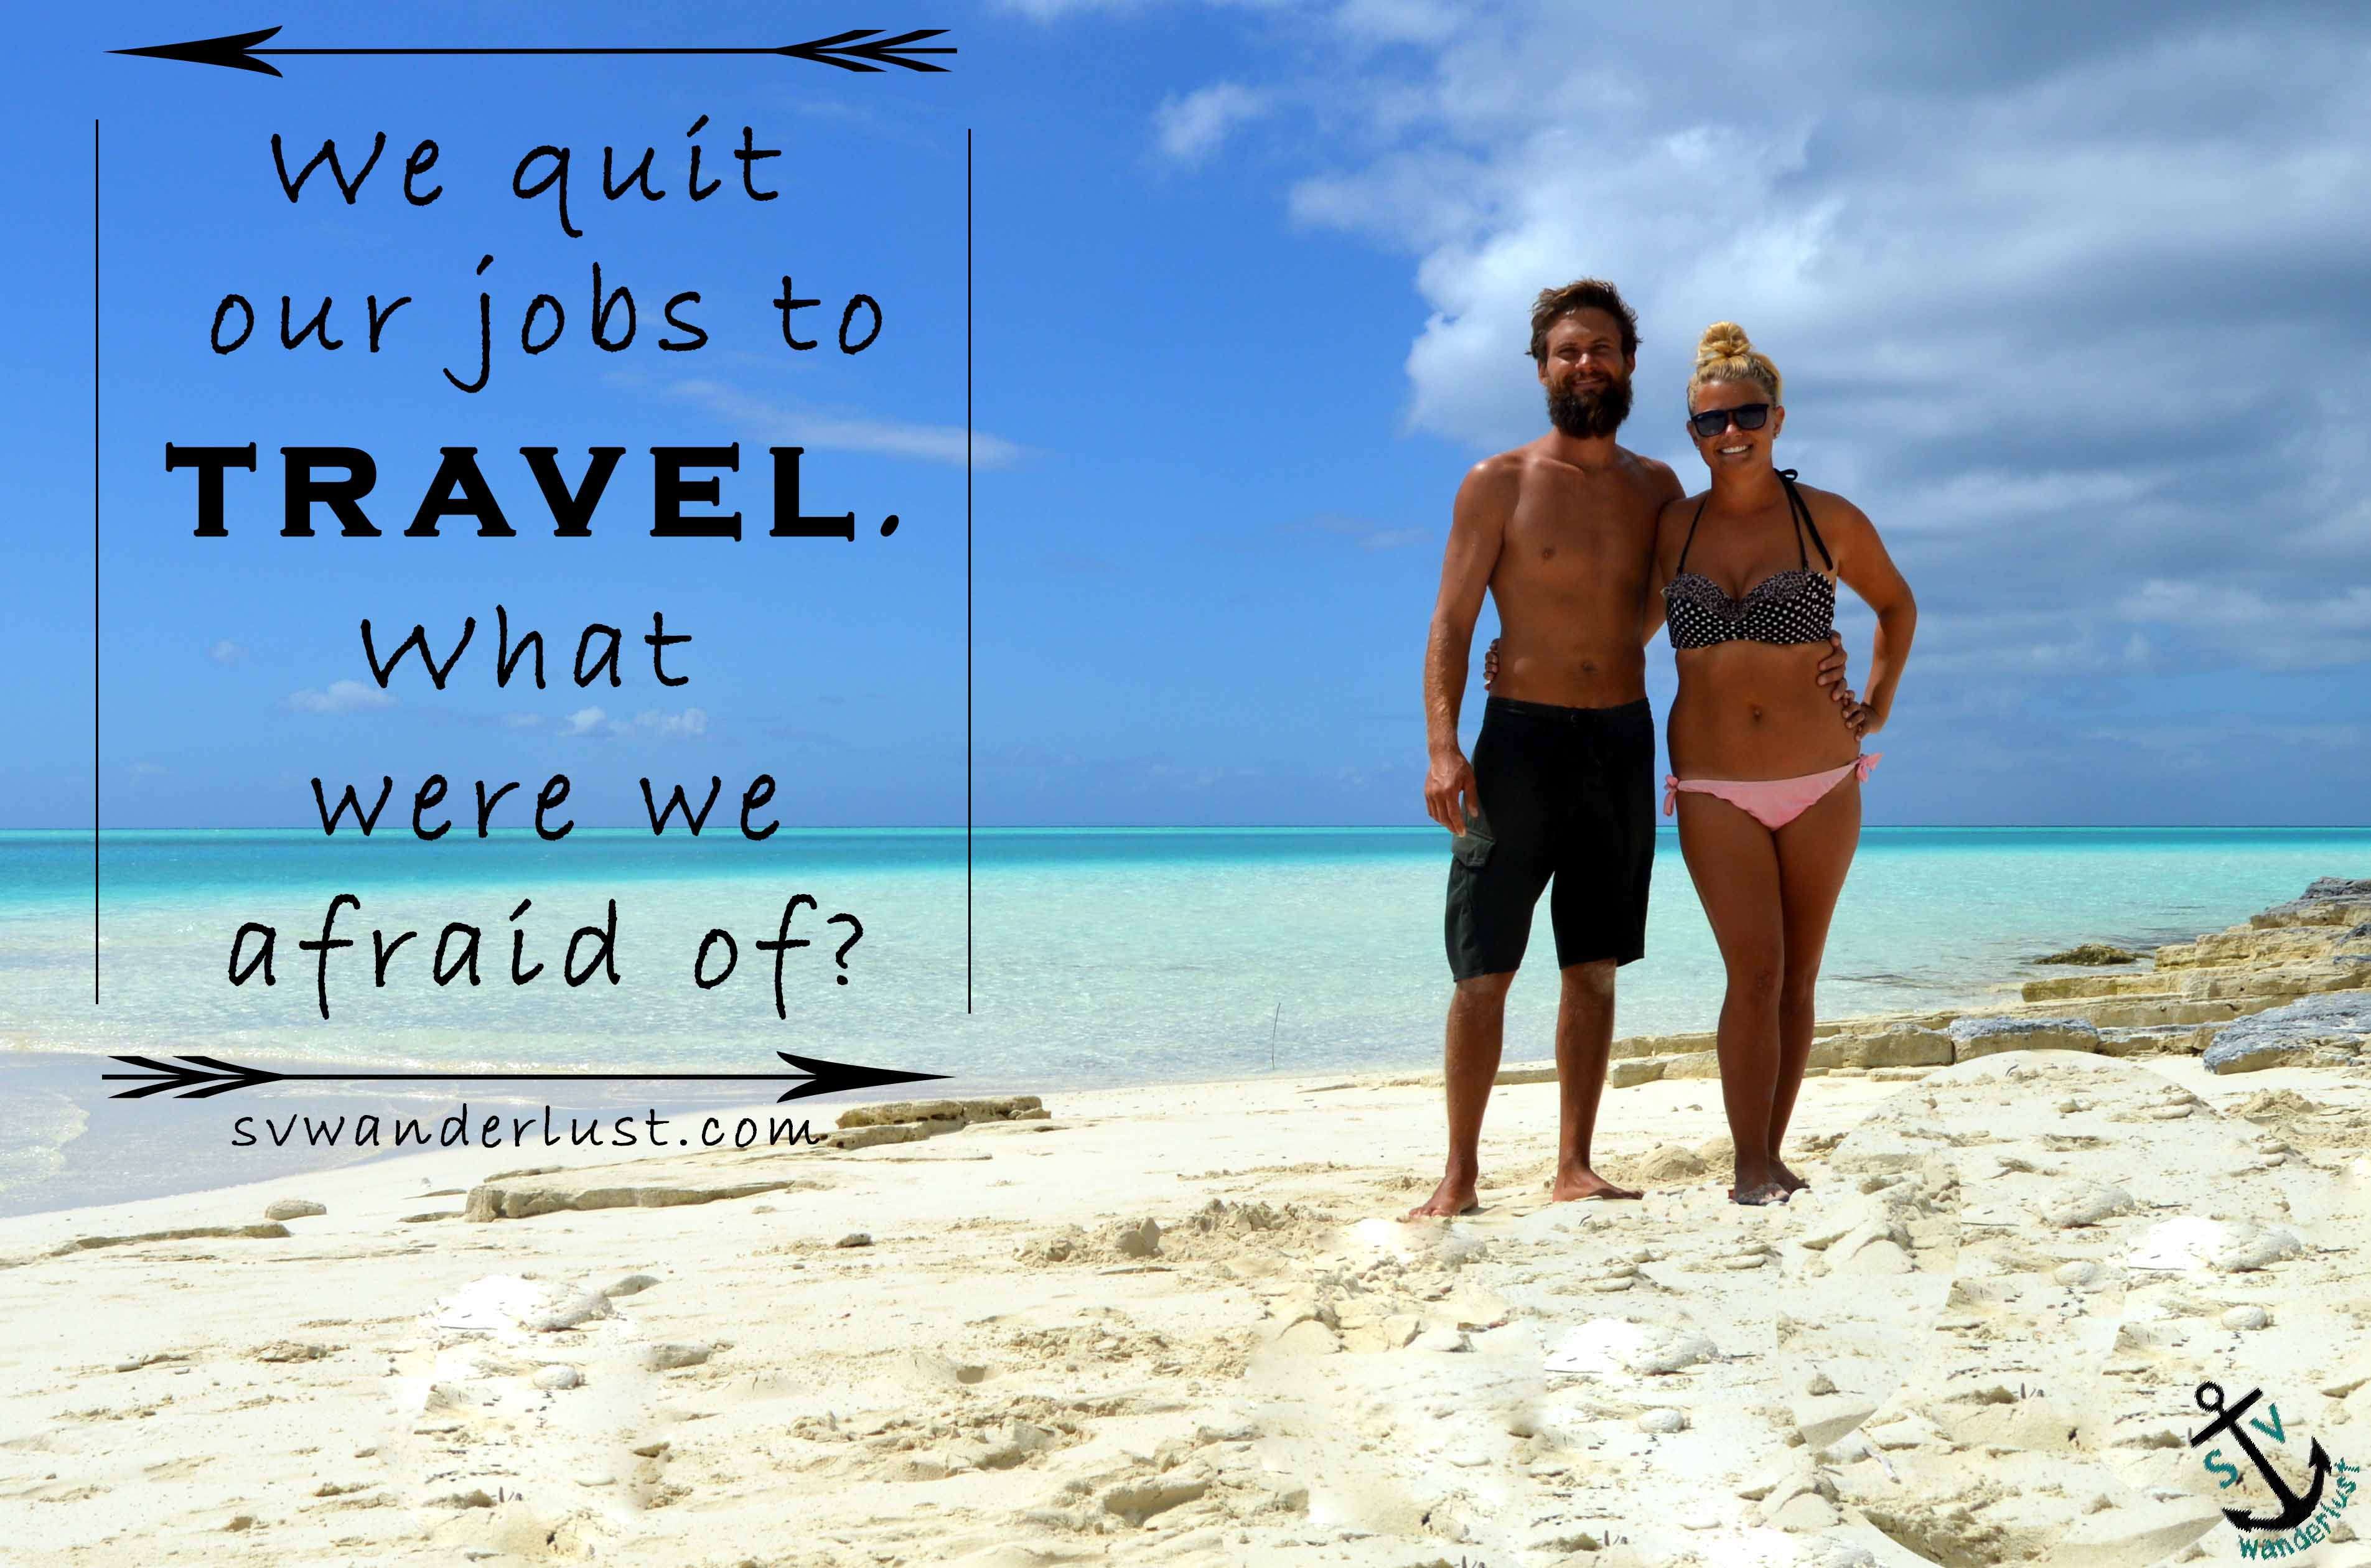 how s v wanderlust affords to sail full time around the caribbean when my husband ben and i first decided we were going to quit our jobs sell everything and buy a sailboat to travel the caribbean in our late 20s